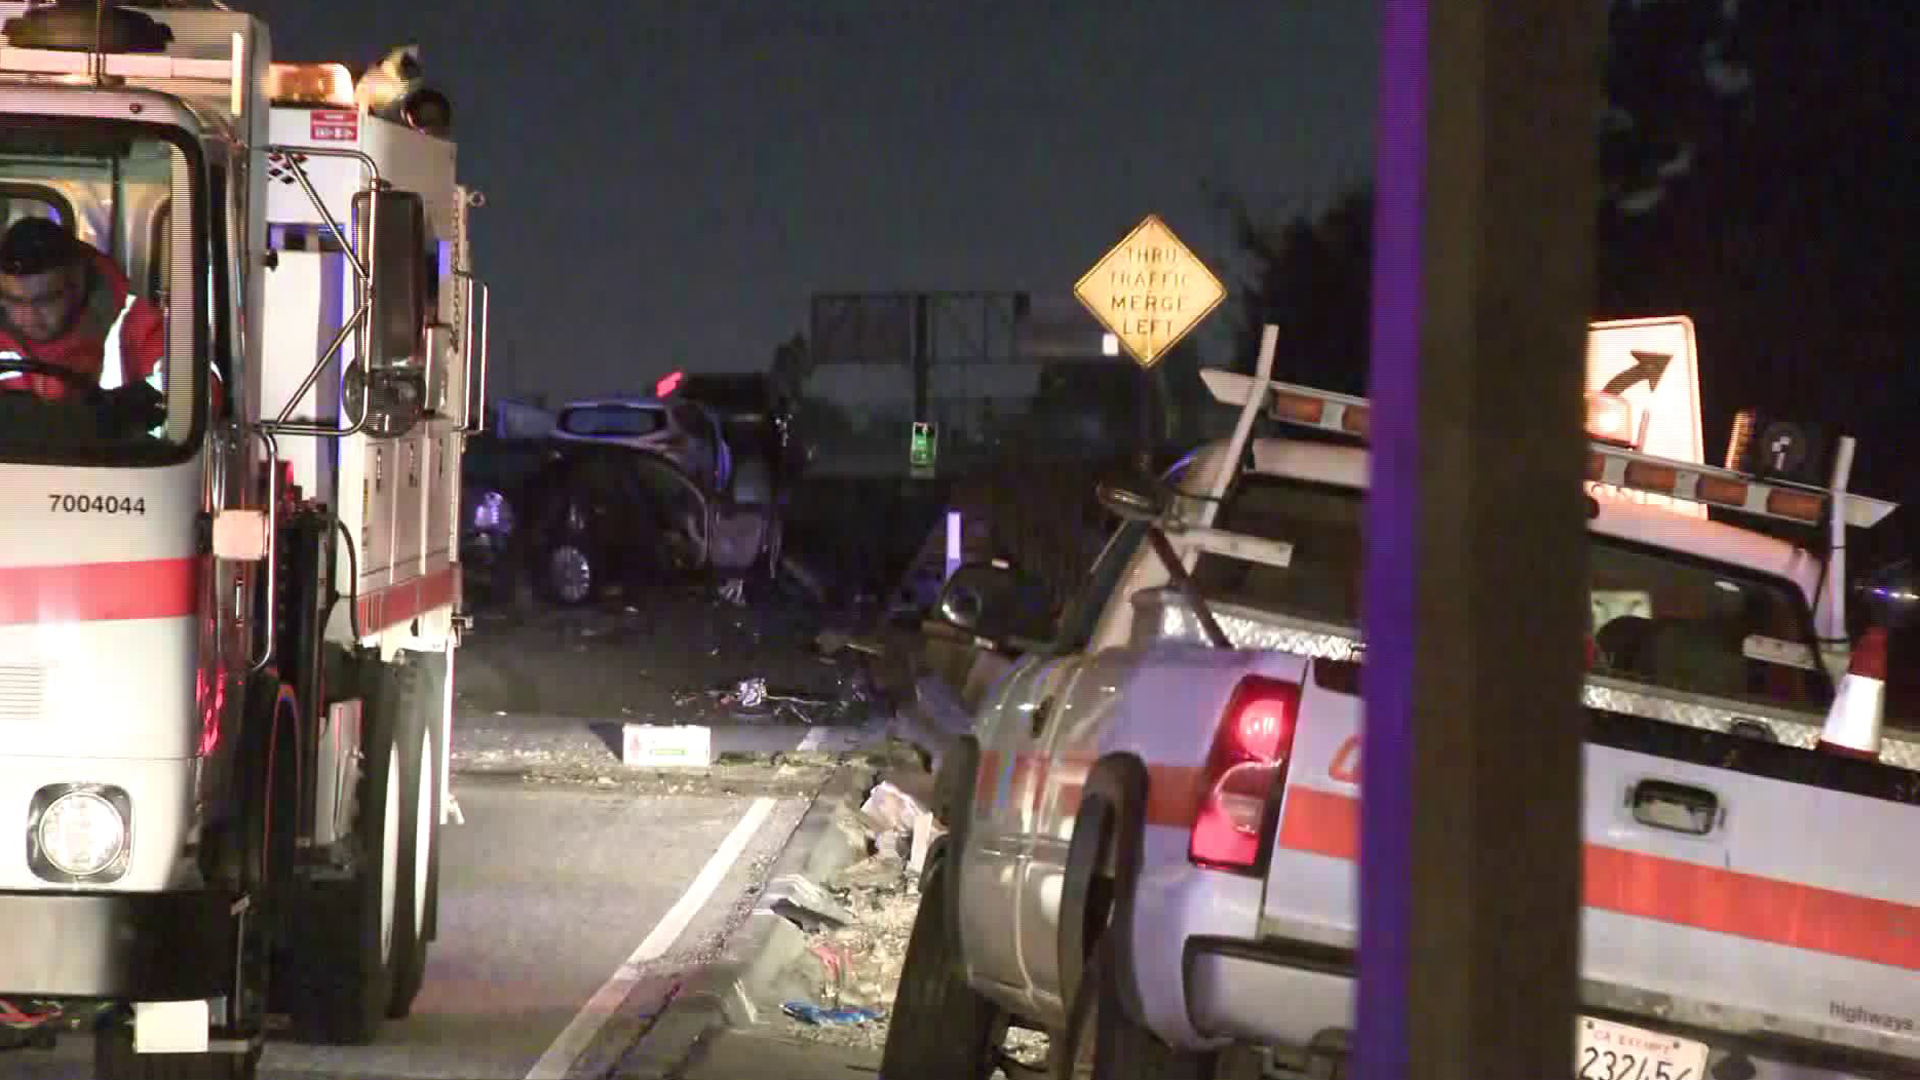 Officials investigate a deadly crash in Duarte on Dec. 15, 2019. (Credit: KTLA)